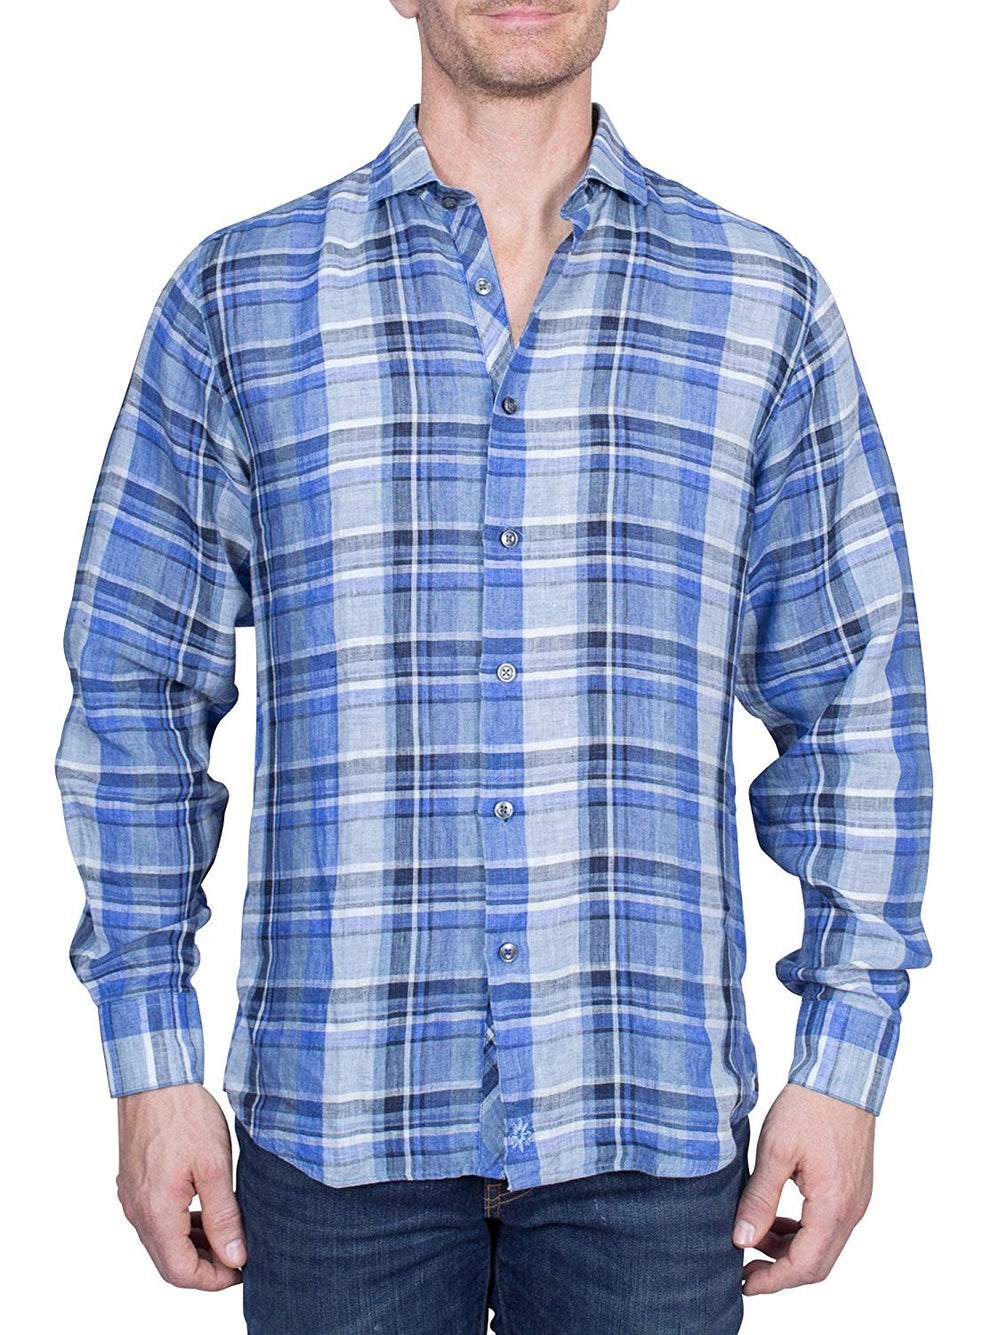 Thaddeus FRANKLIN Mens Linen Long Sleeve Plaid Button Down Shirt with Cutaway Collar, Denim Blues